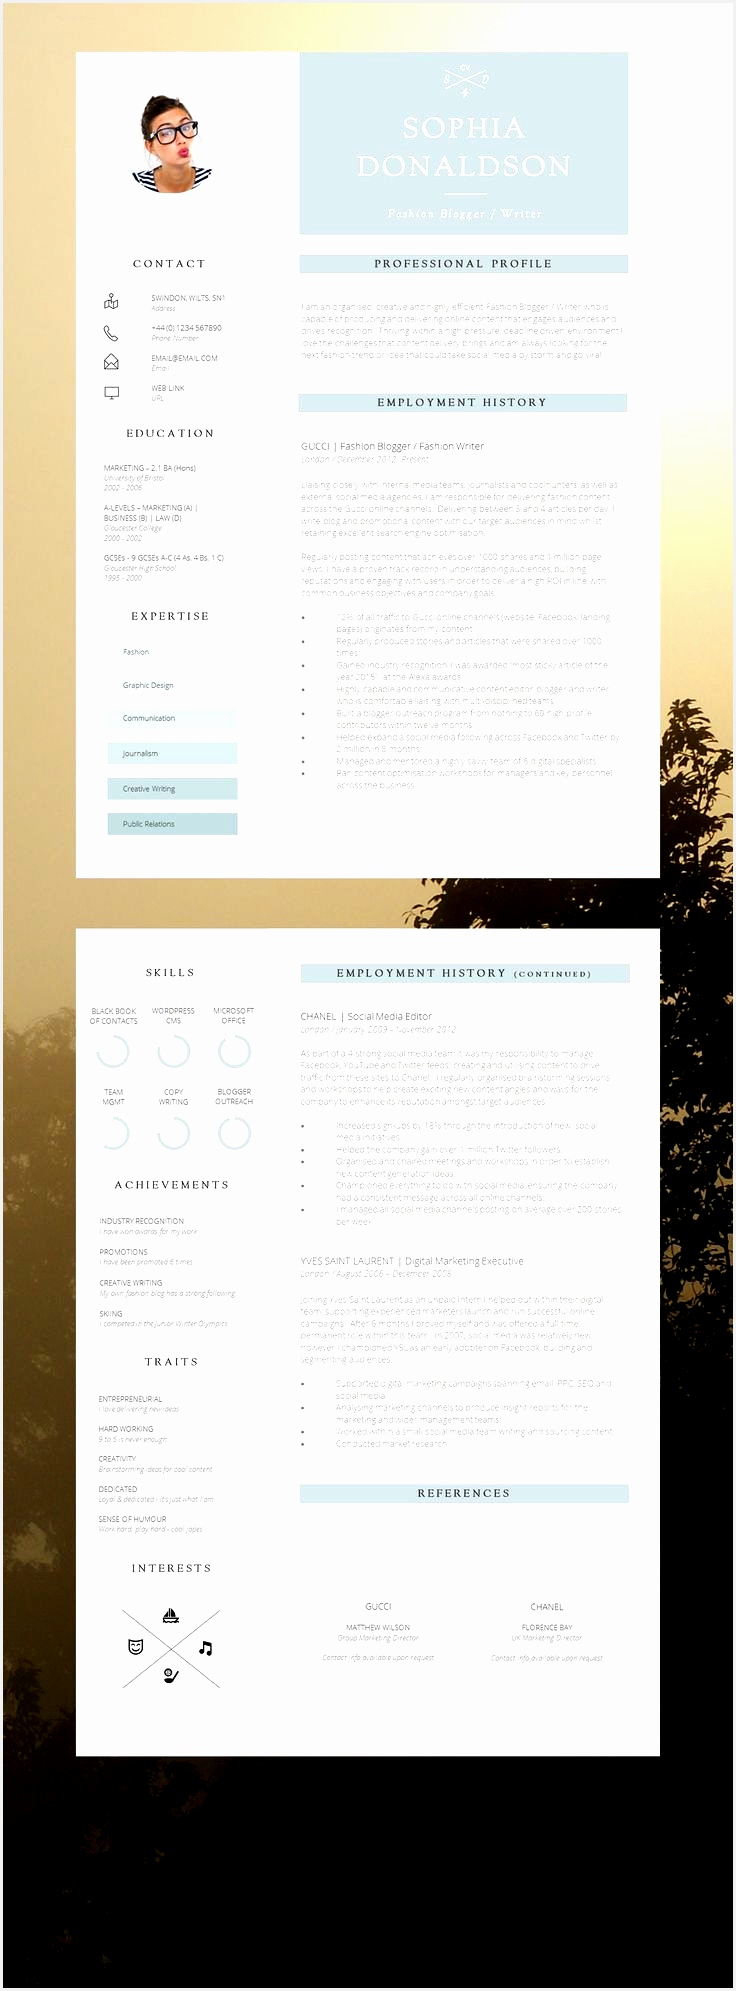 CV Template Modern CV Design Don t underestimate the power of a Professional1991736